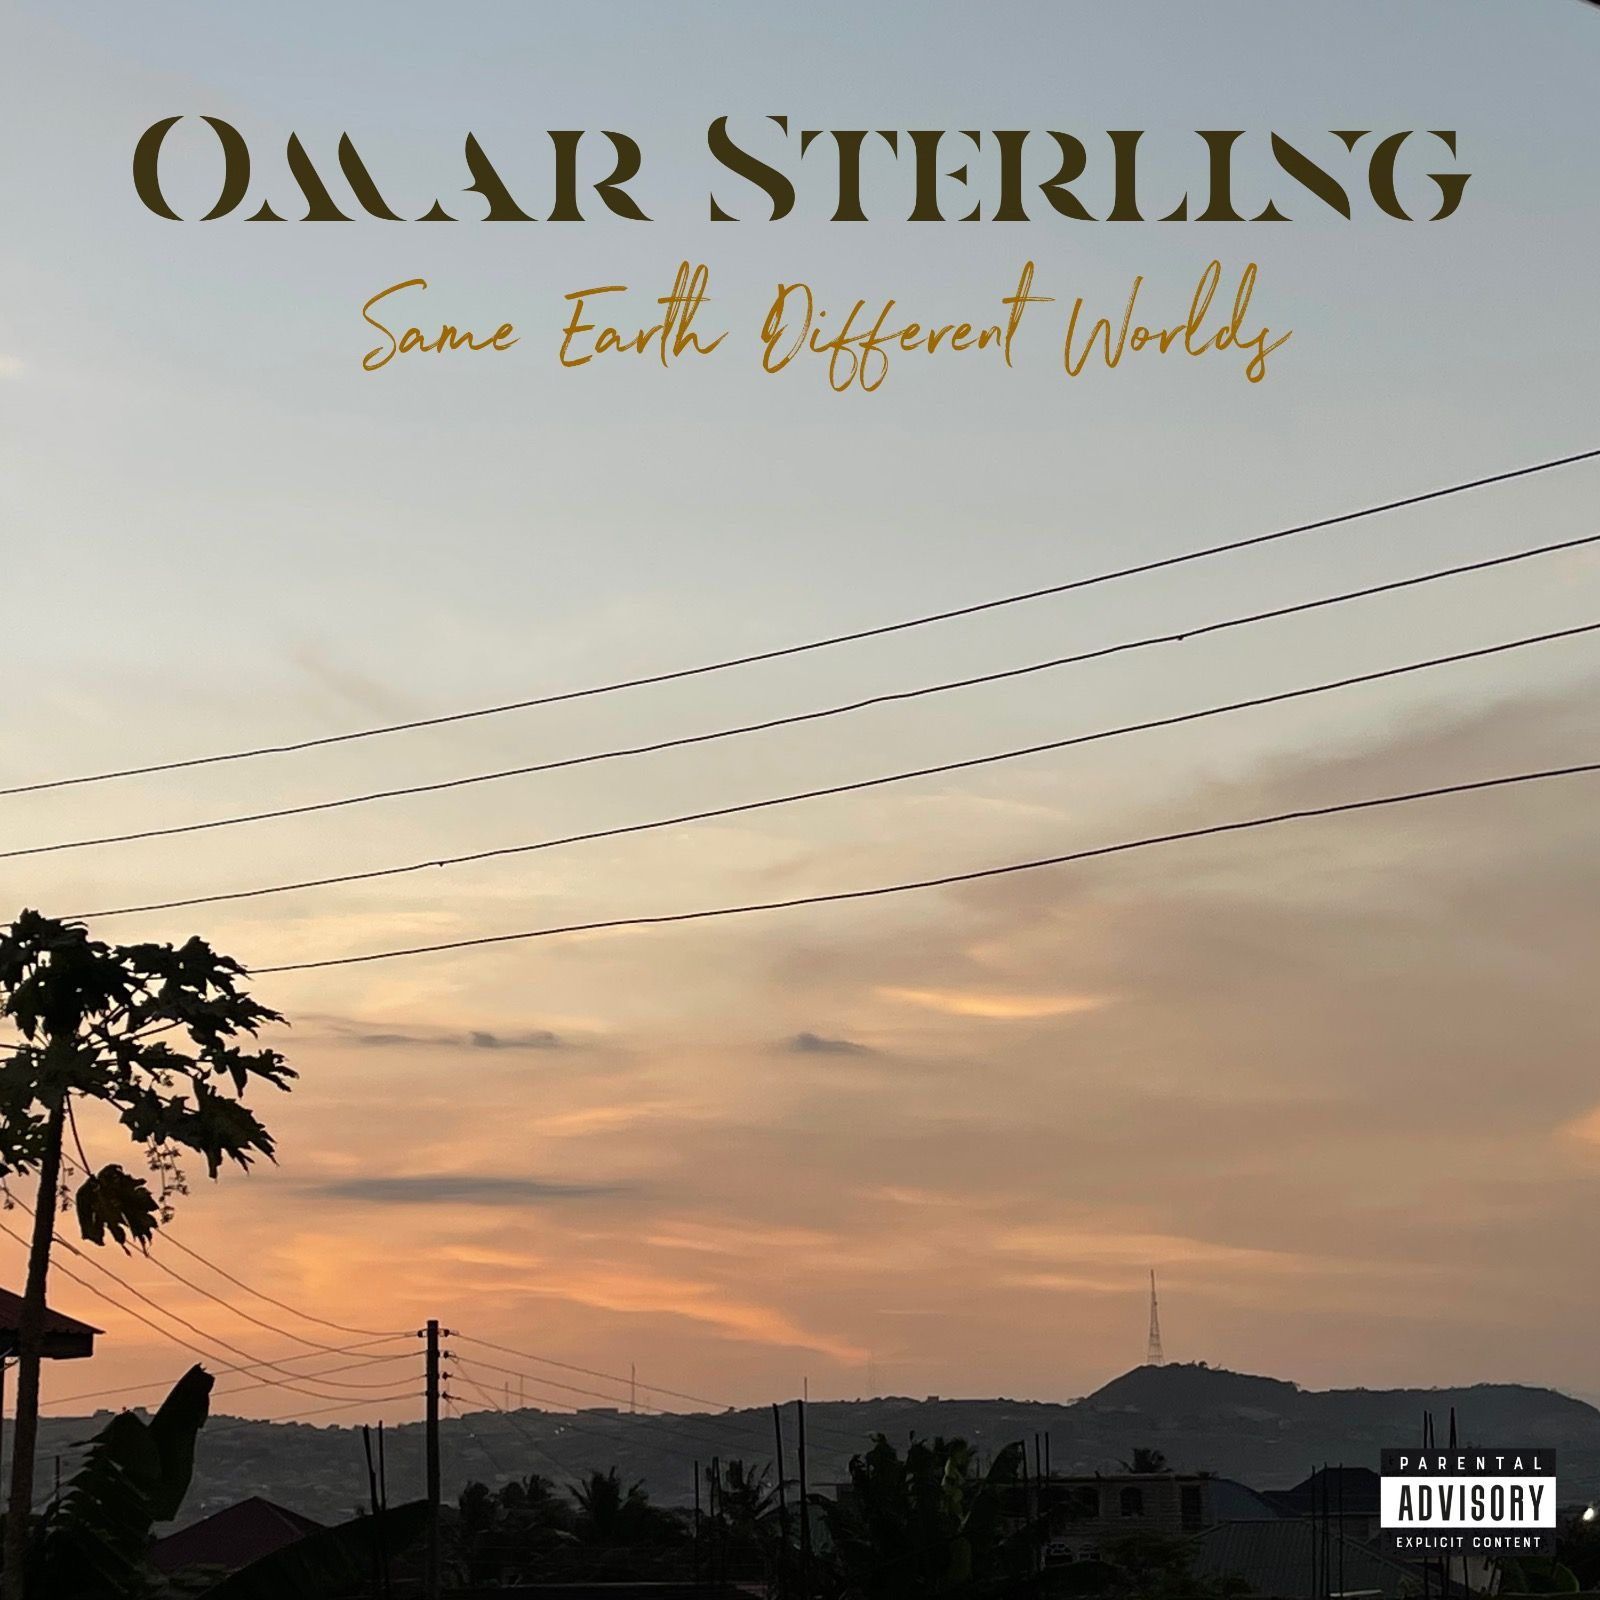 Omar Sterling Treading on Thin Ice mp3 download